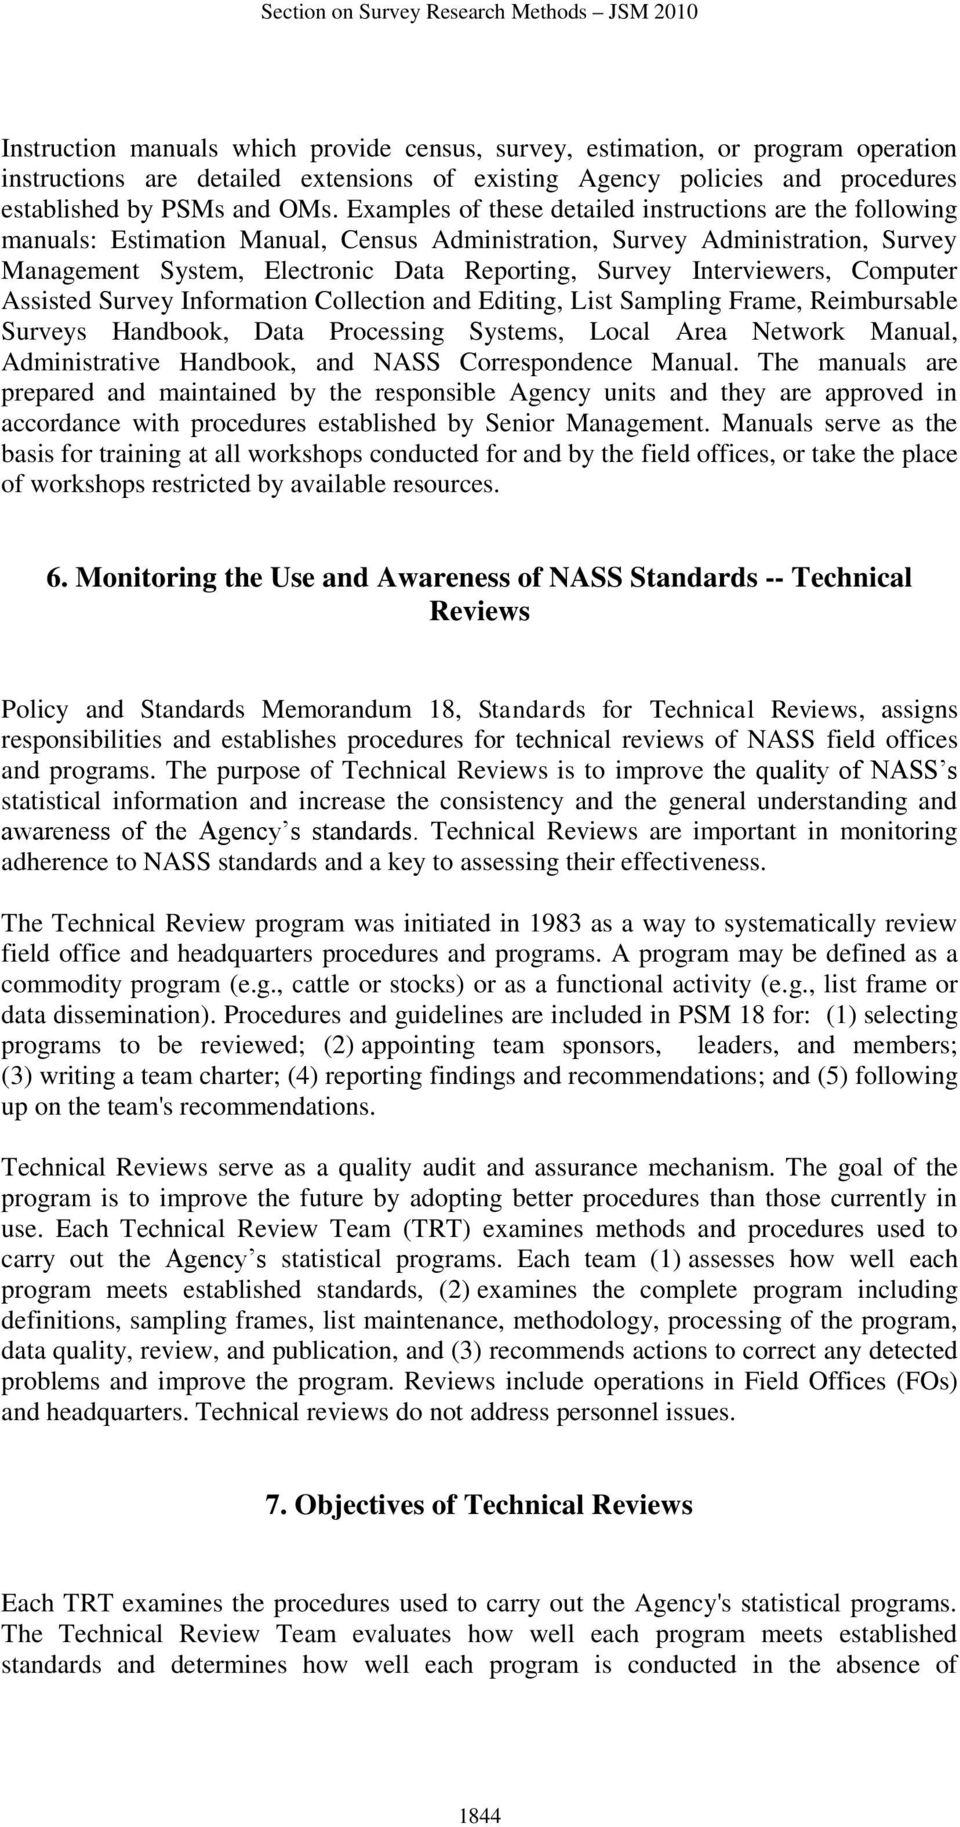 Interviewers, Computer Assisted Survey Information Collection and Editing, List Sampling Frame, Reimbursable Surveys Handbook, Data Processing Systems, Local Area Network Manual, Administrative